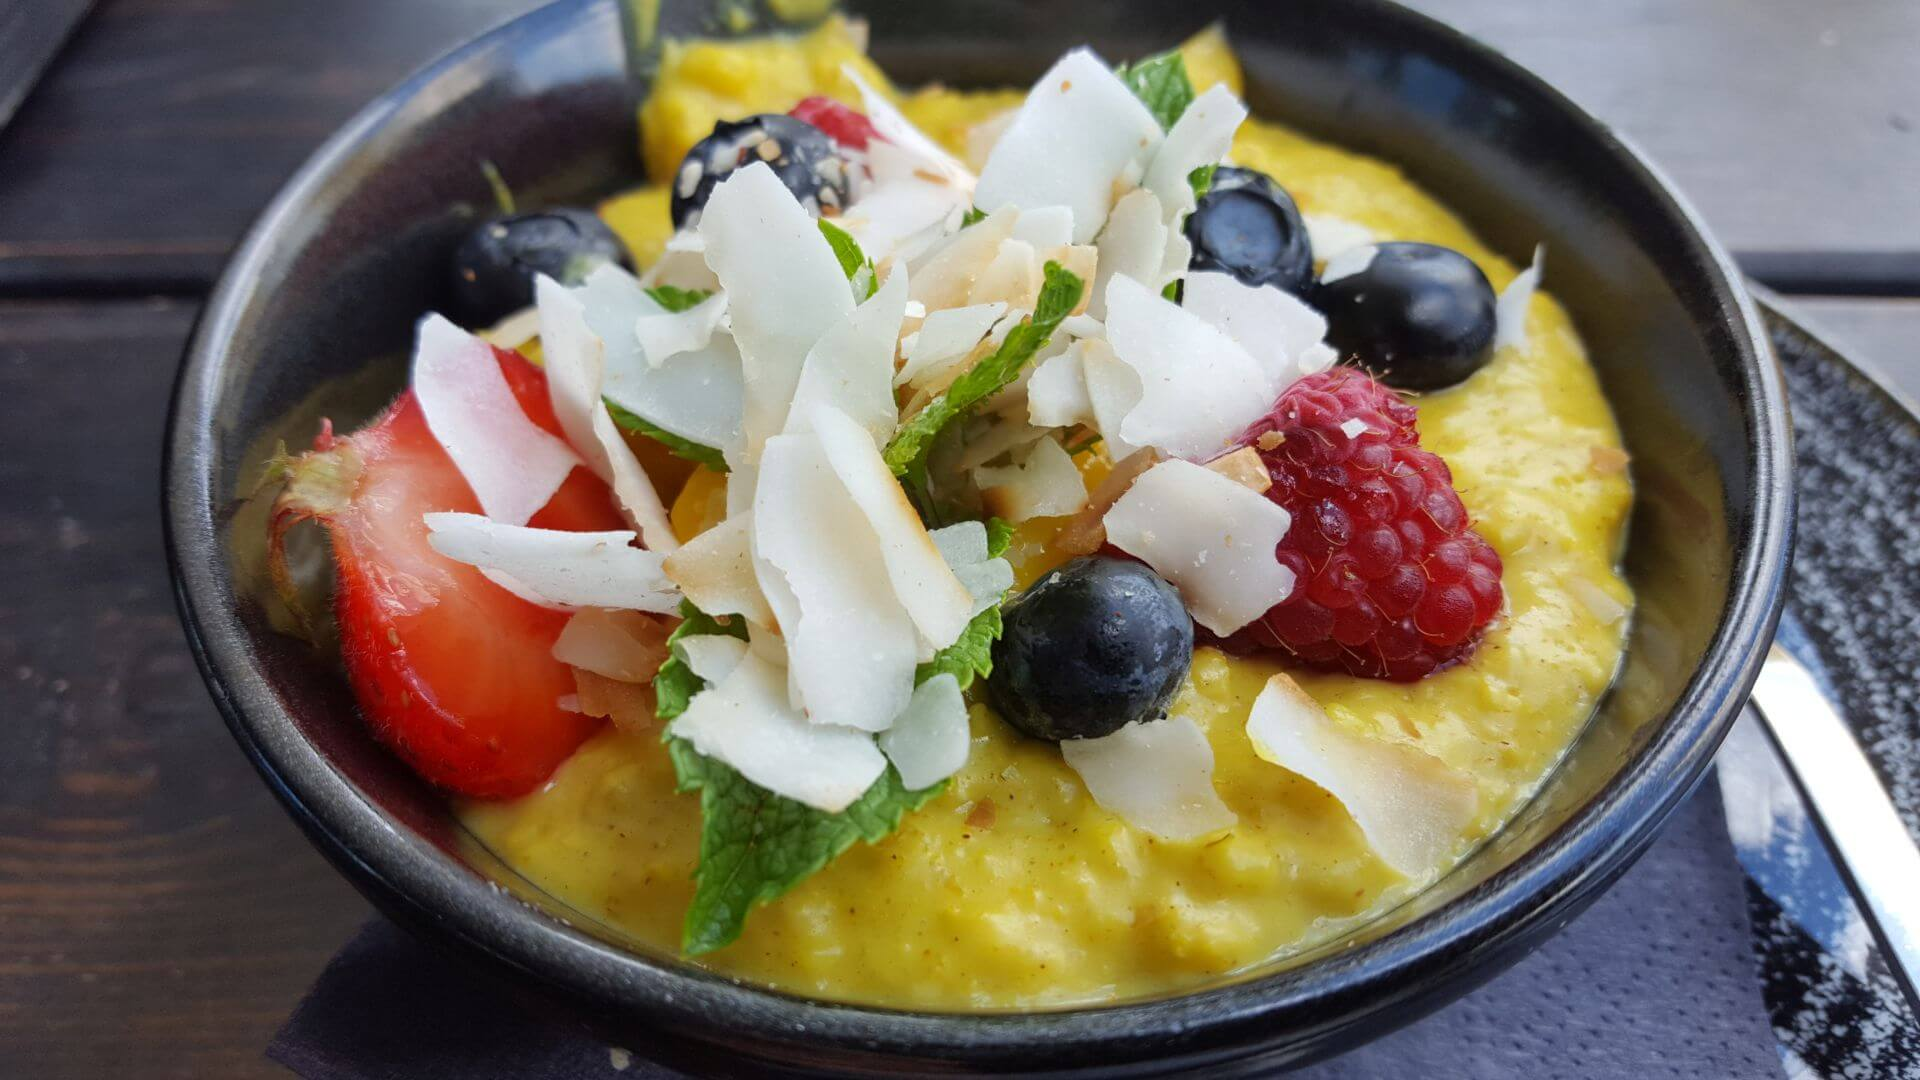 Golden Porridge with turmeric, cinnamon, mango, coconut, berries and mint.